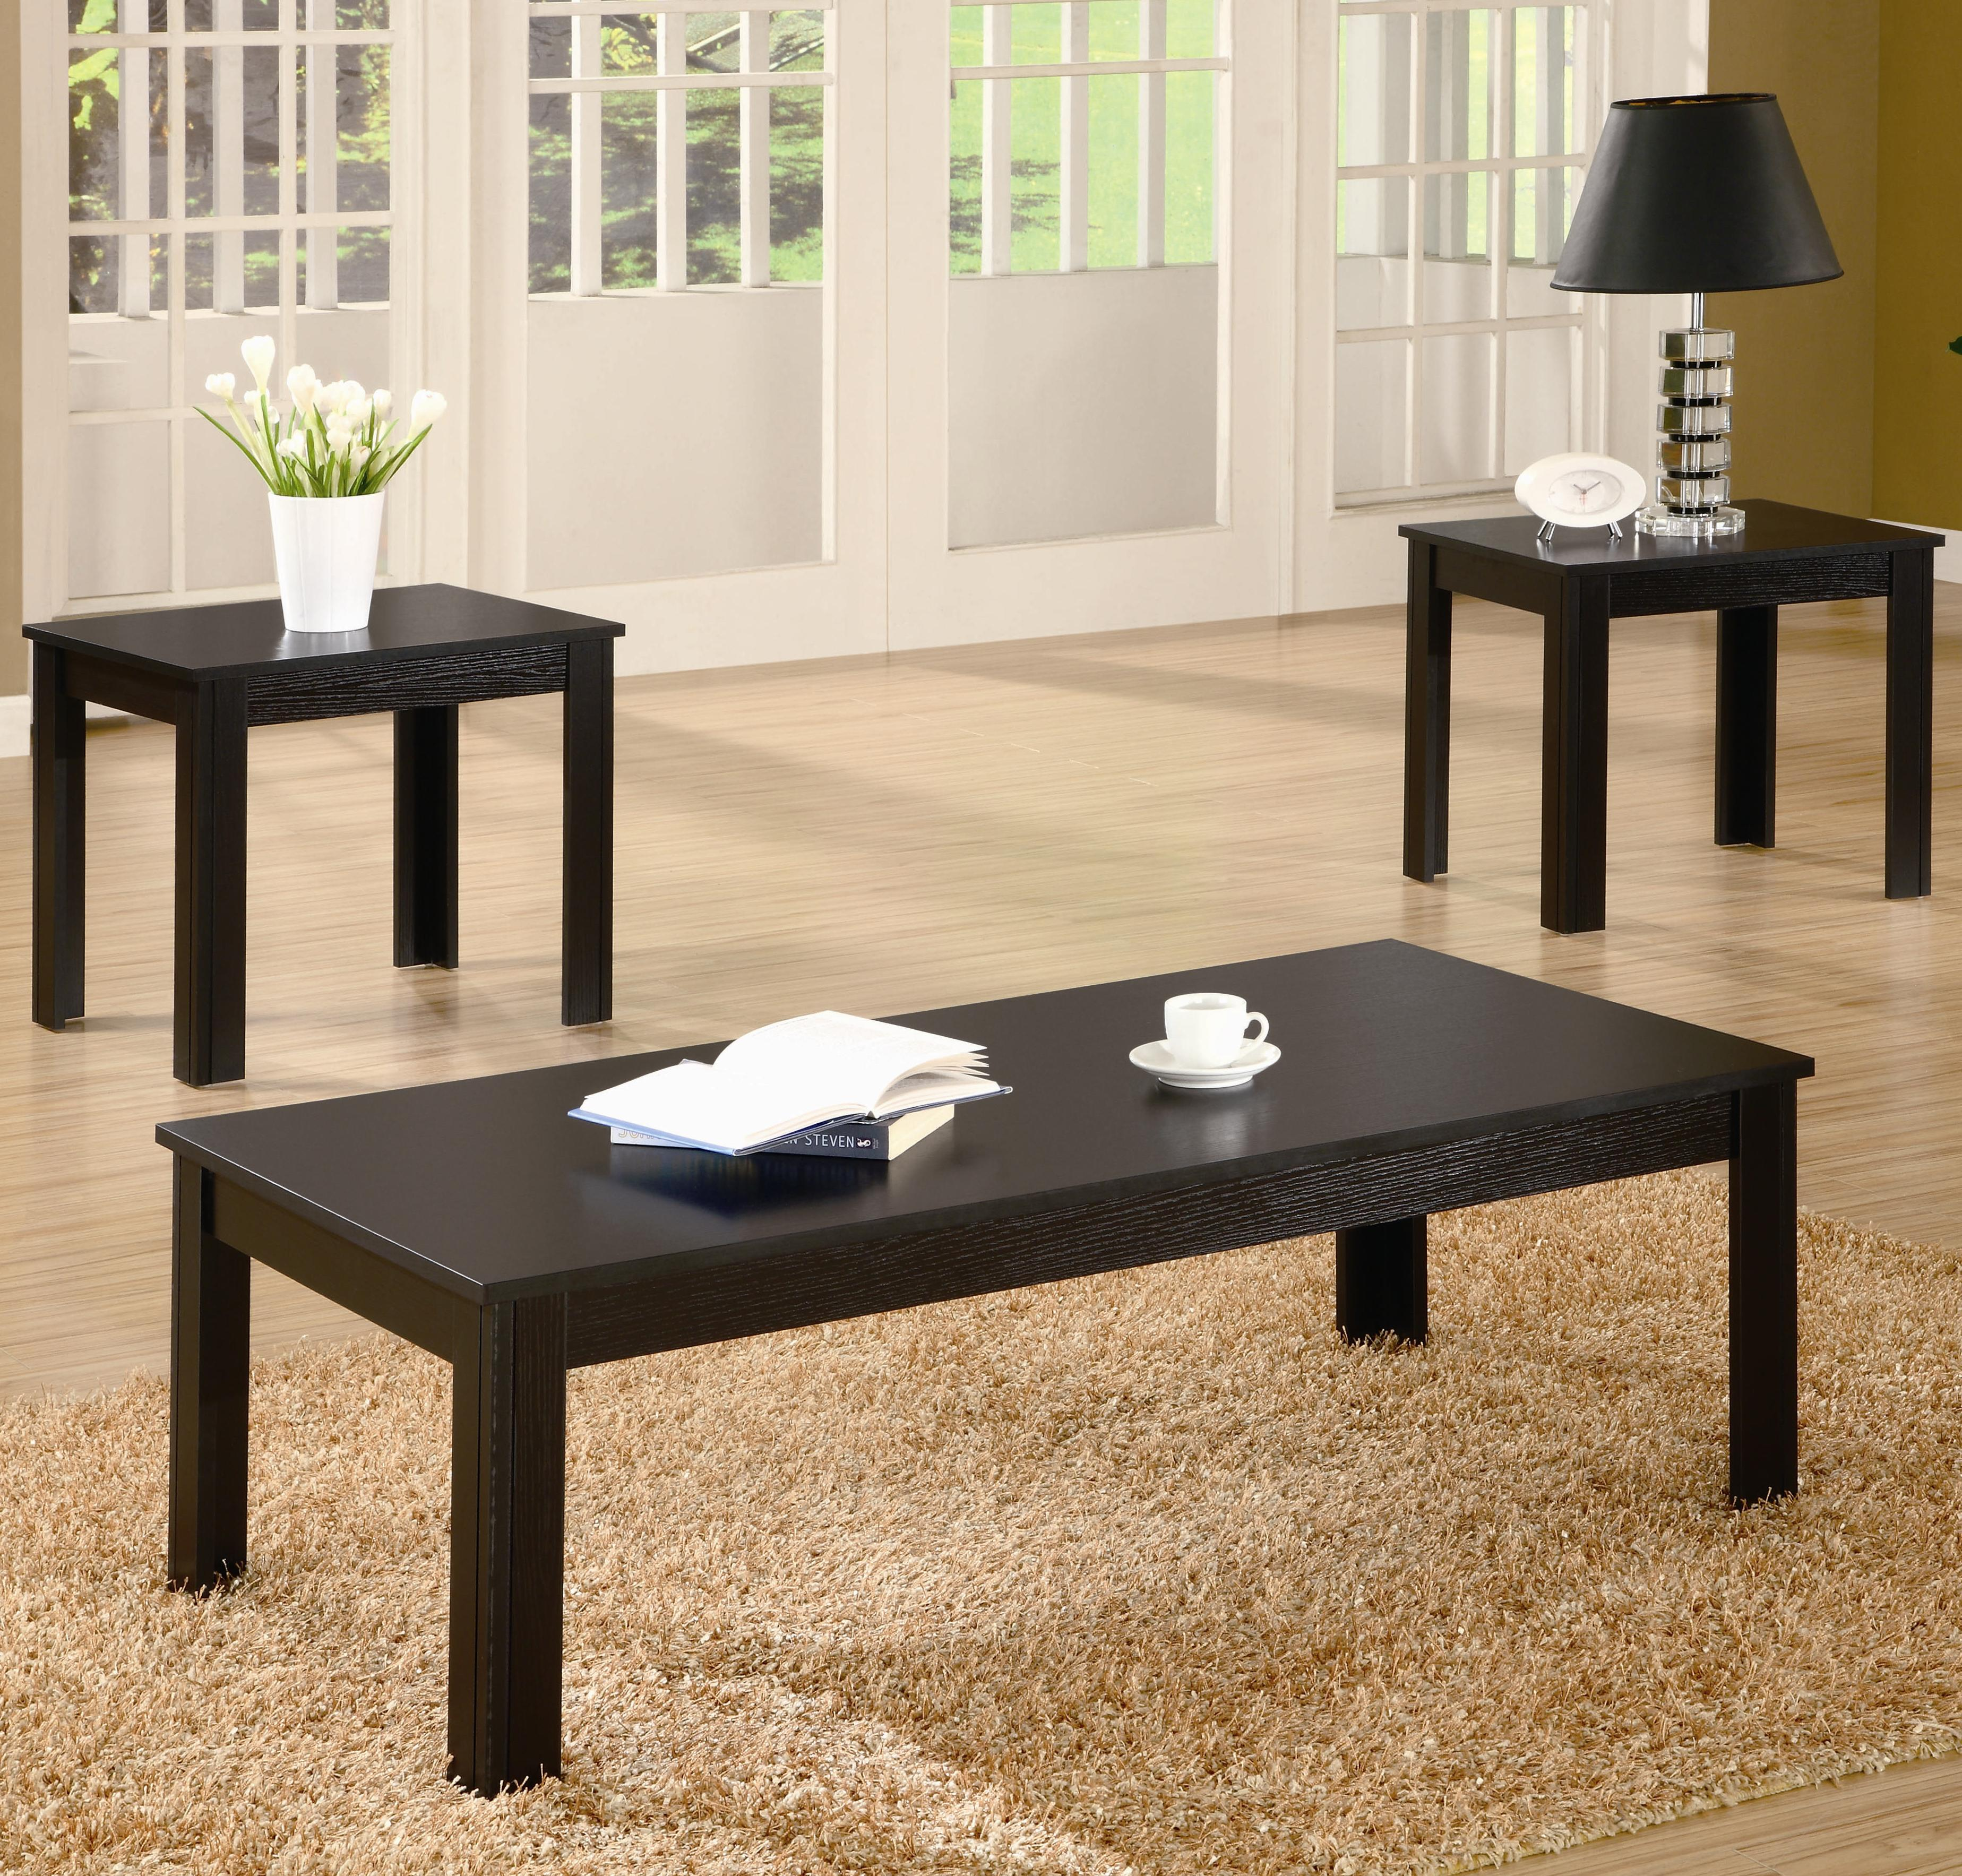 Occasional Table Sets 3 Piece Table Set by Coaster at Rooms for Less